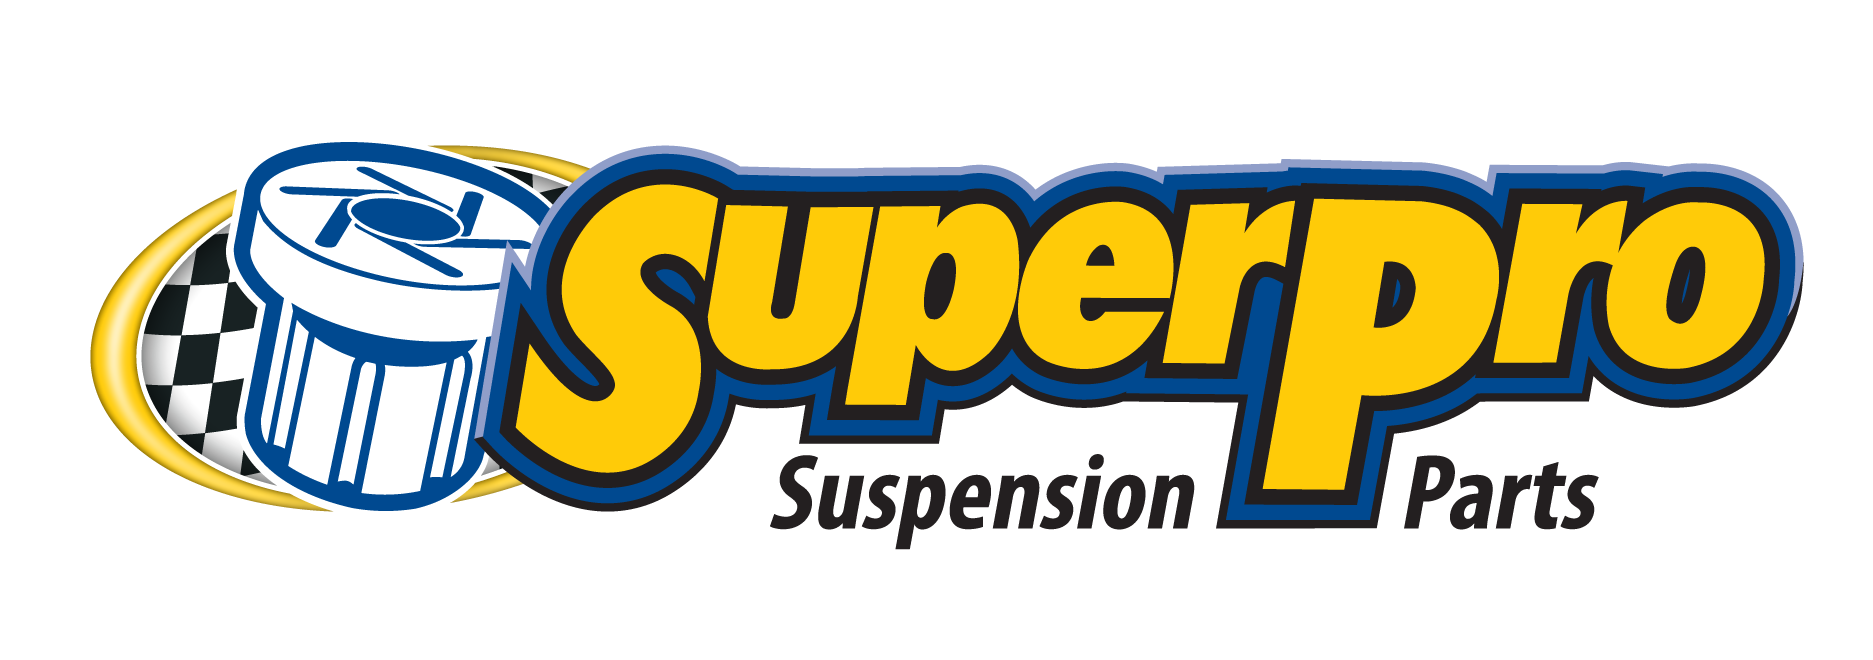 superpro_wide_logo